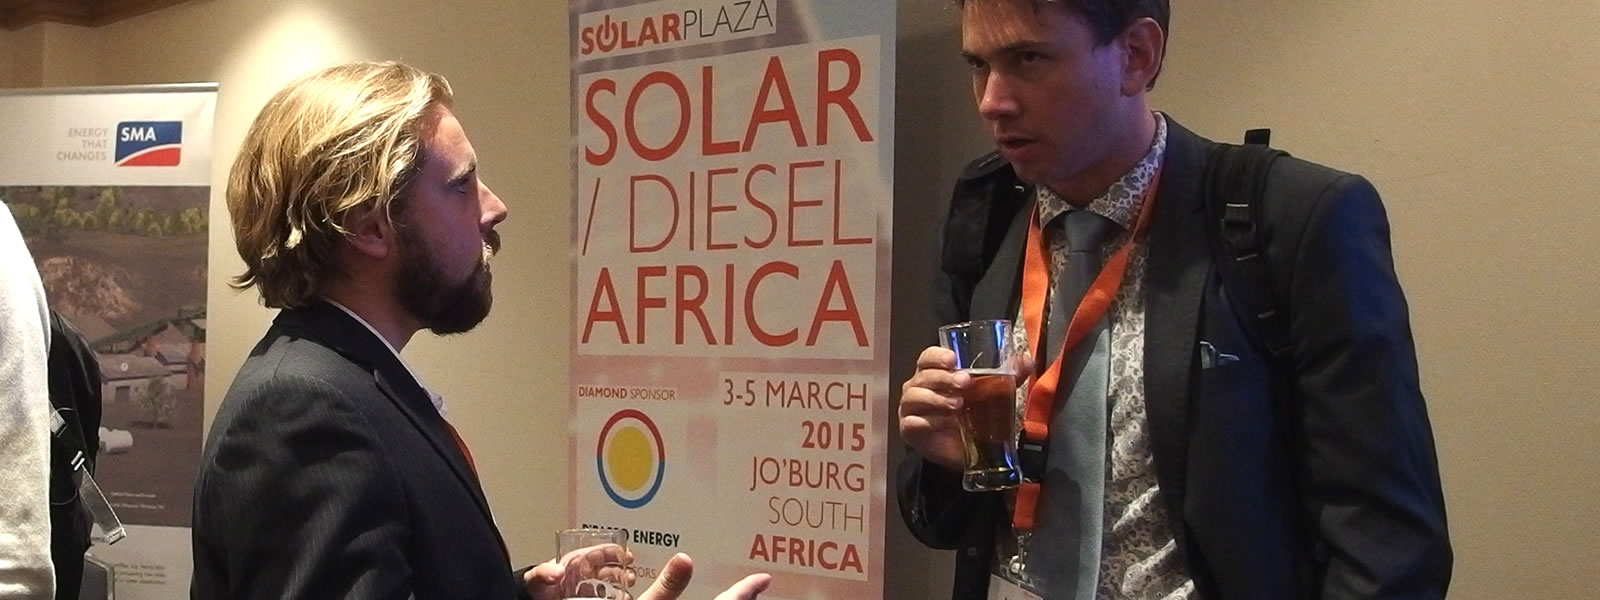 Abe pitching his dream to a fellow participant at Solarplaza's 'Solar/Diesel Africa' conference in (March 2015, Johannesburg )